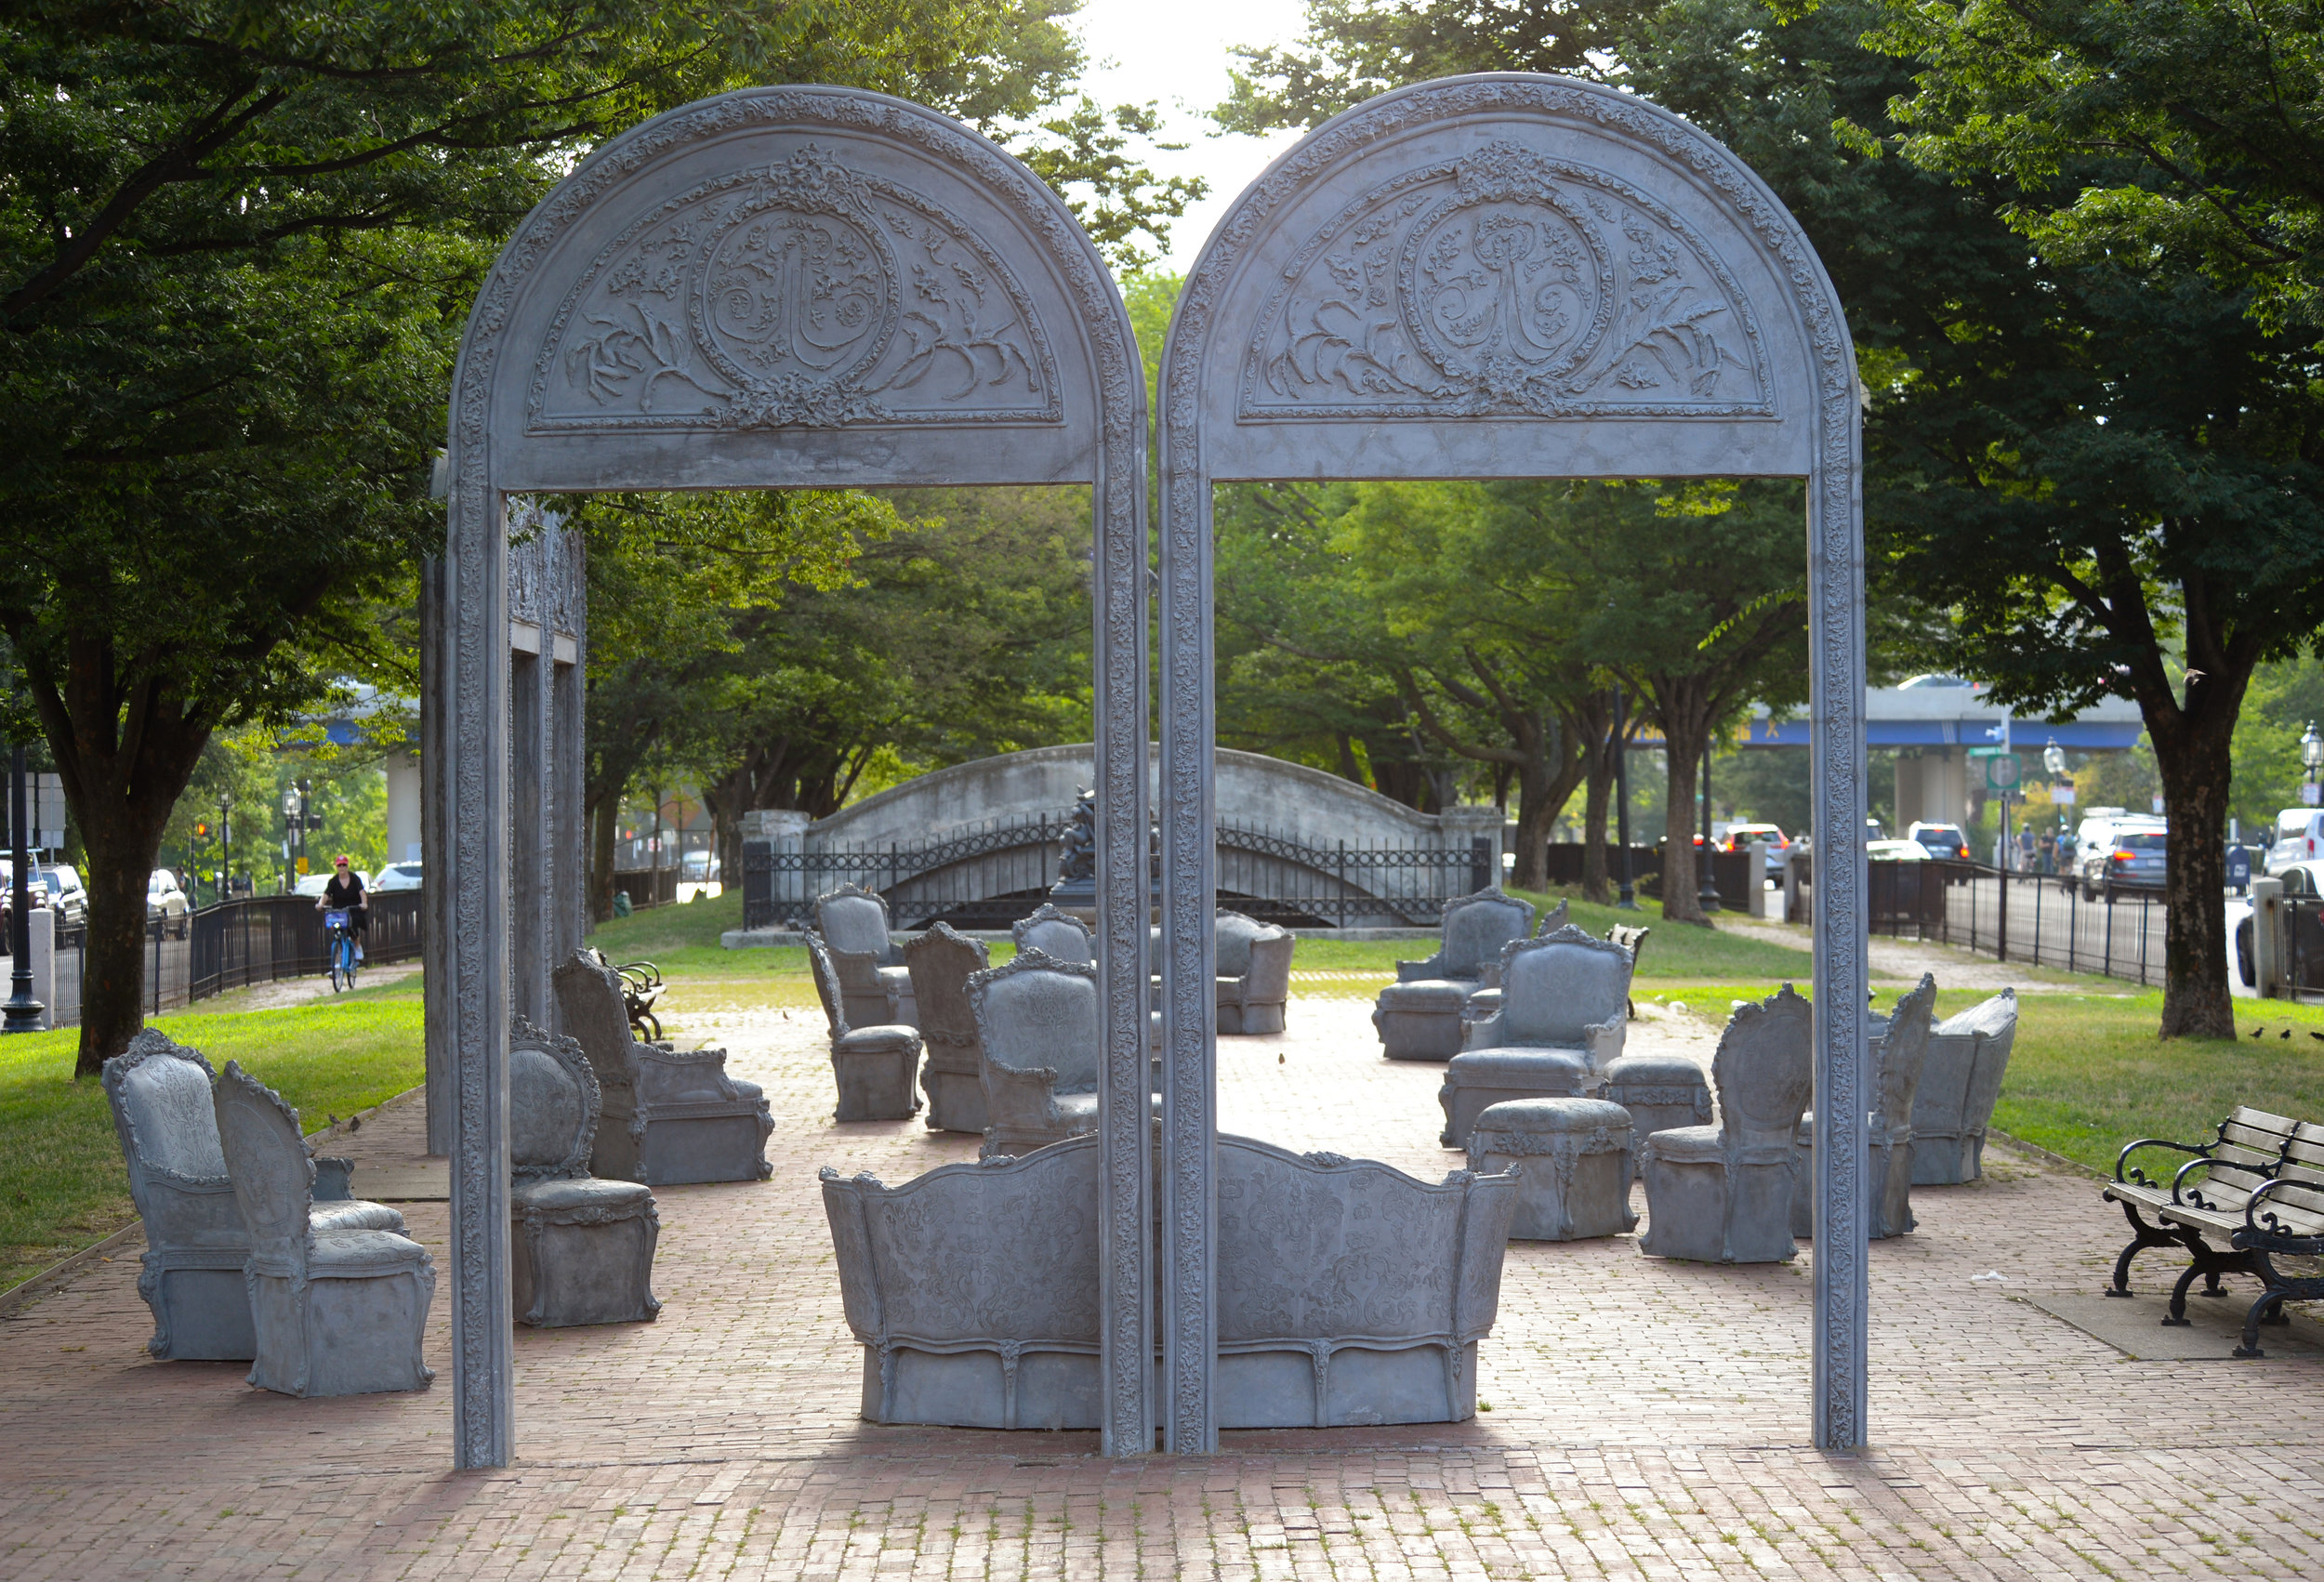 Liz Glynn. Installation view, Open House, 2018, on Commonwealth Ave Mall. Cast Concrete. Organized for Boston by Now + There, Open House was commissioned and originally presented in 2017 by Public Art Fund in Central Park, New York in cooperation with the artist and Paula Cooper Gallery.